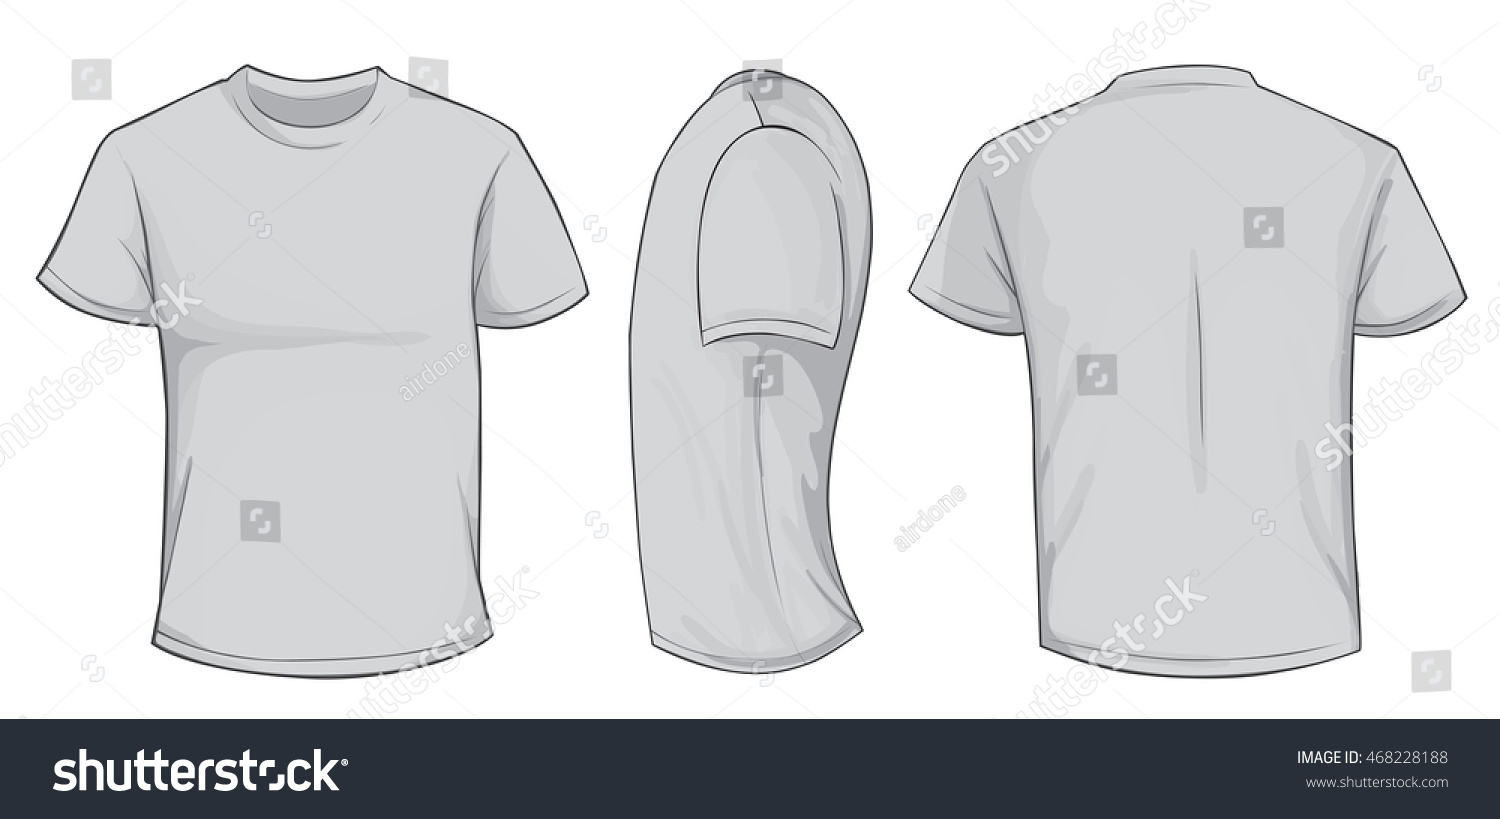 Similar Images To Vector Illustration Of Blank Grey Men T Shirt Template Front Side And Back Design Isolated On White